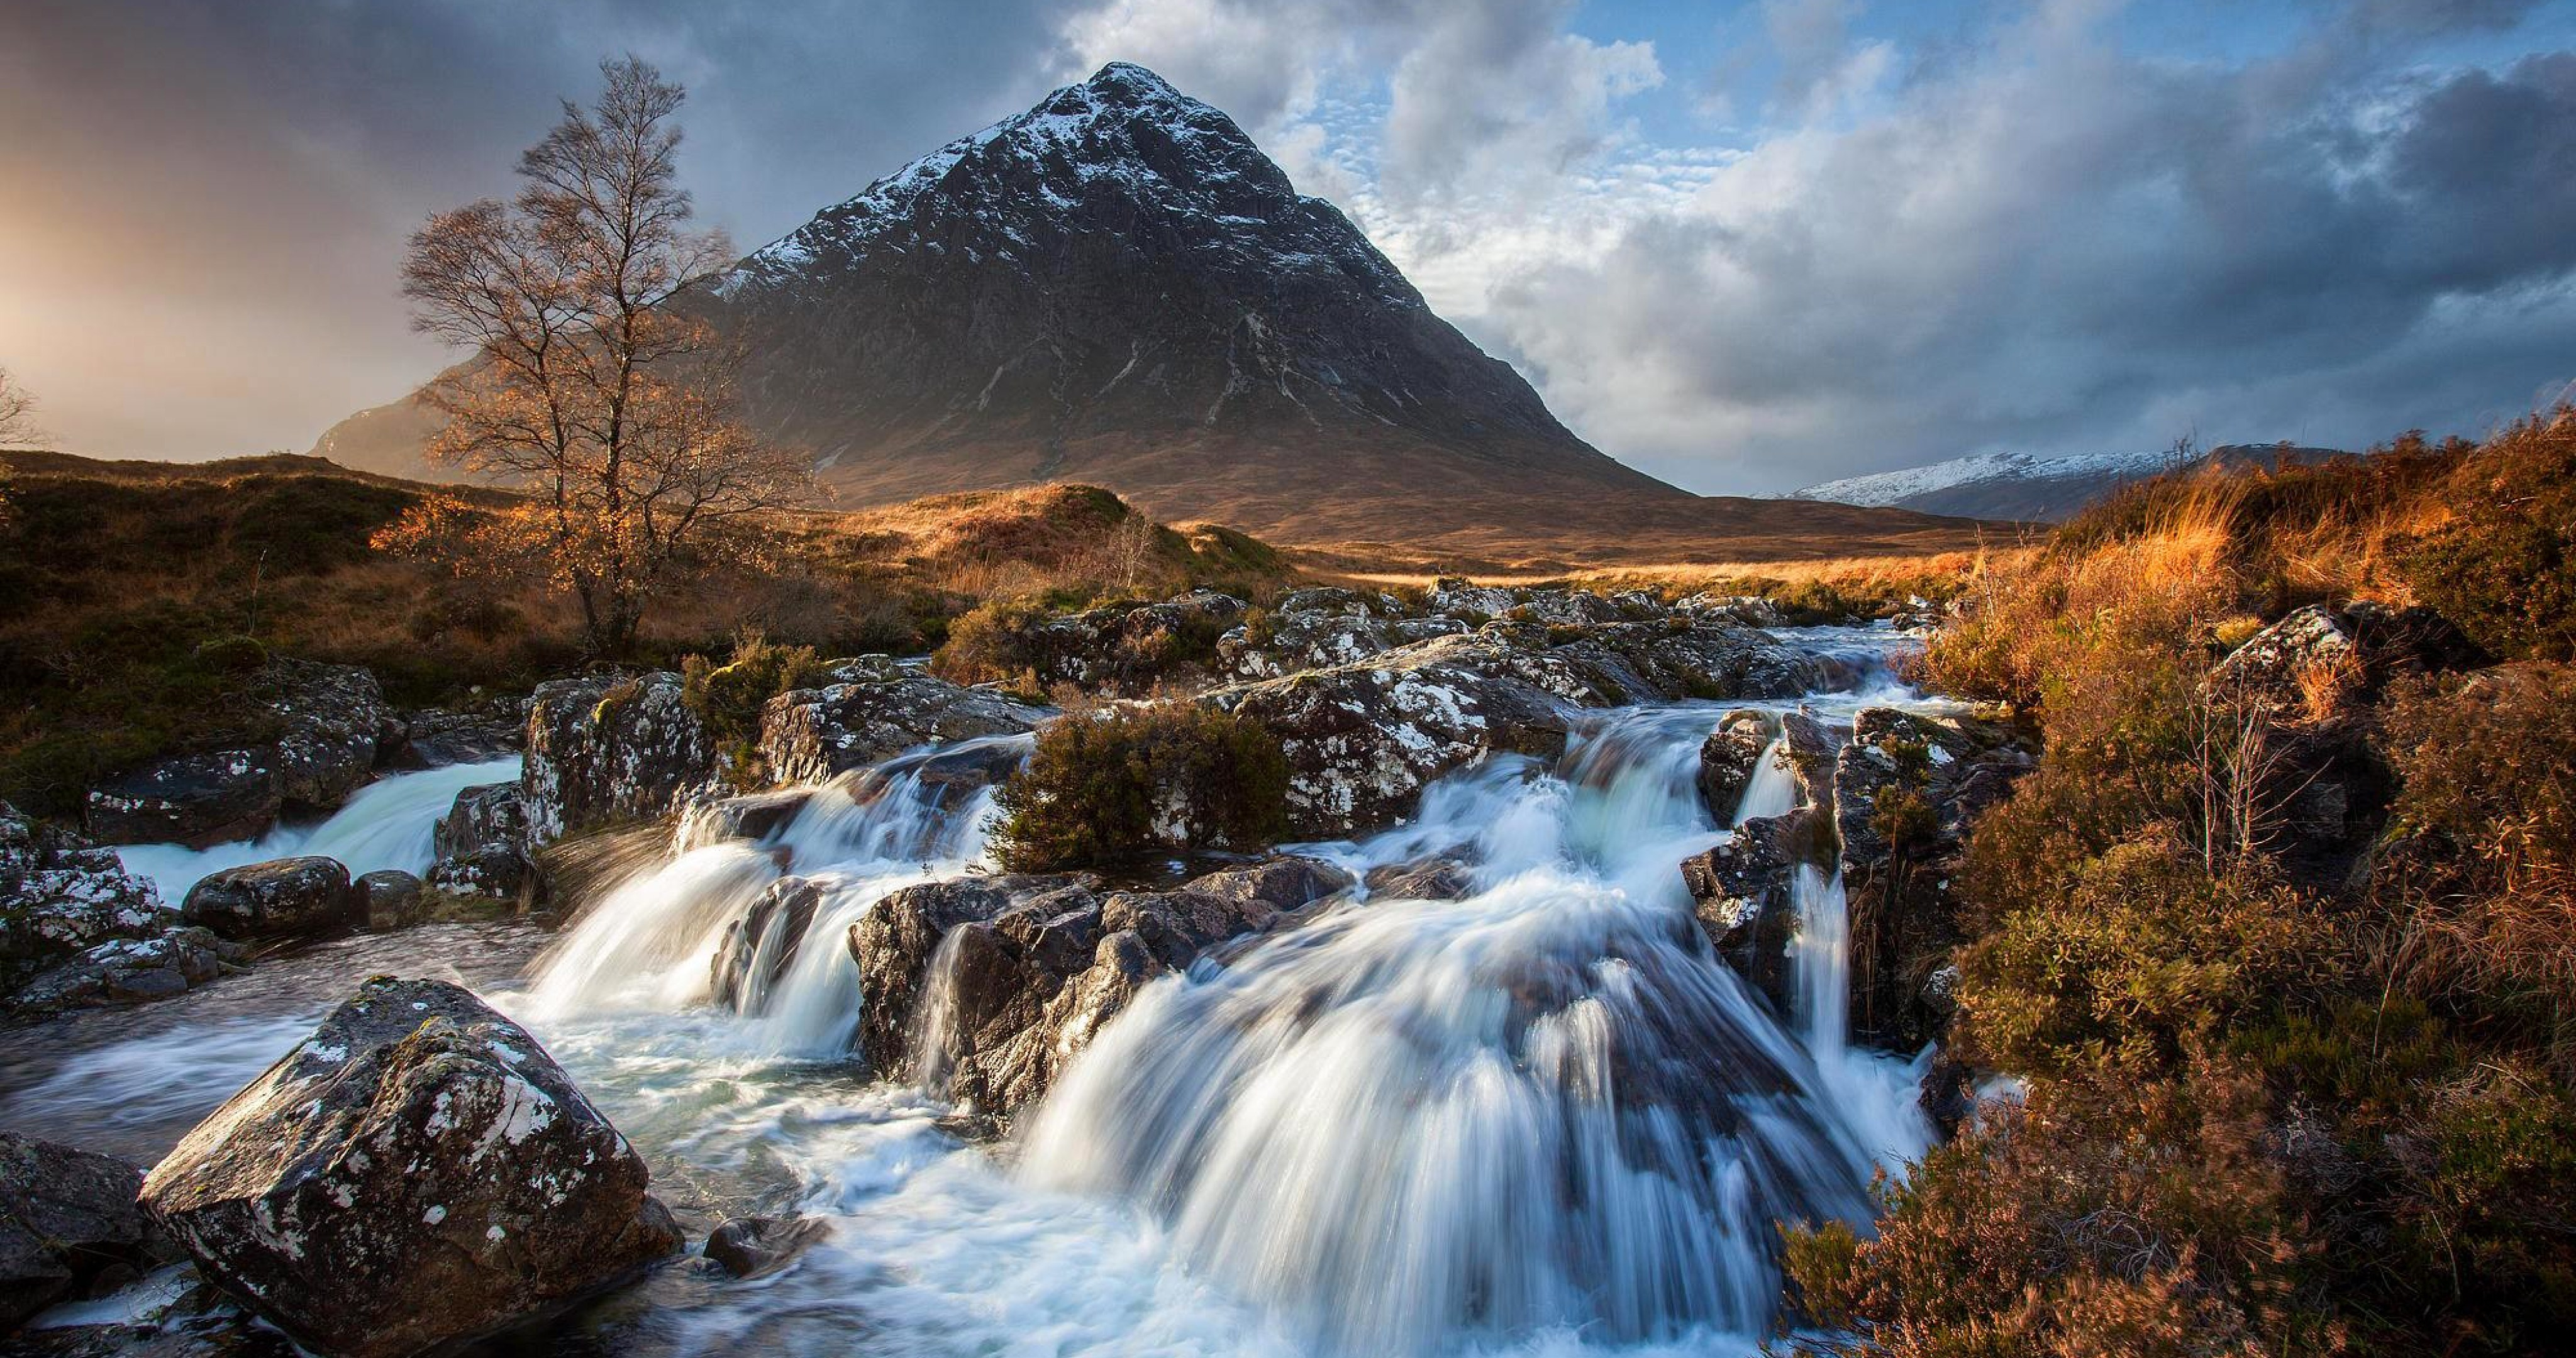 Mountain River Stream 4k Ultra Hd Wallpaper High Quality Walls